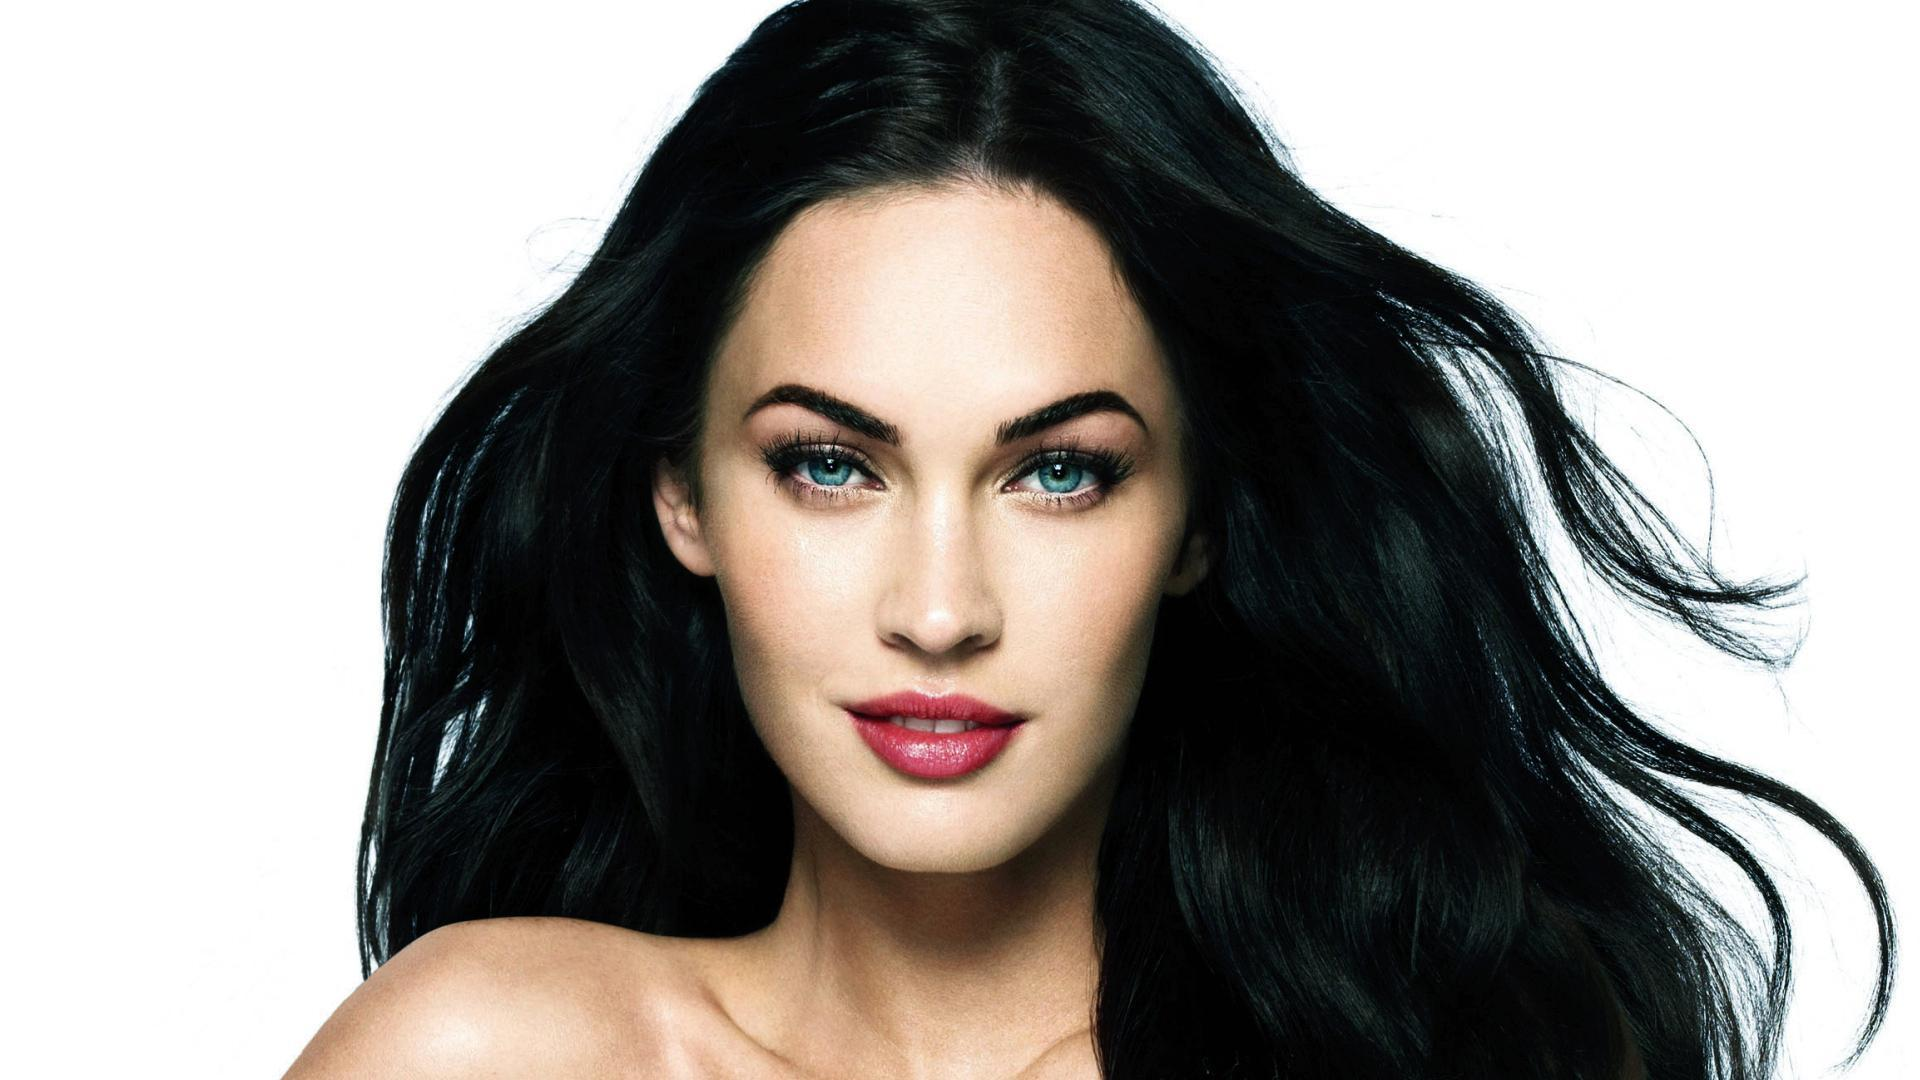 """If you eat Chinese food, your farts come out like Chinese food. If you eat Mexican food, your farts come out like Mexican food. And milk, it's like-you can smell the warmth in the fart.""                                 - Megan Fox"